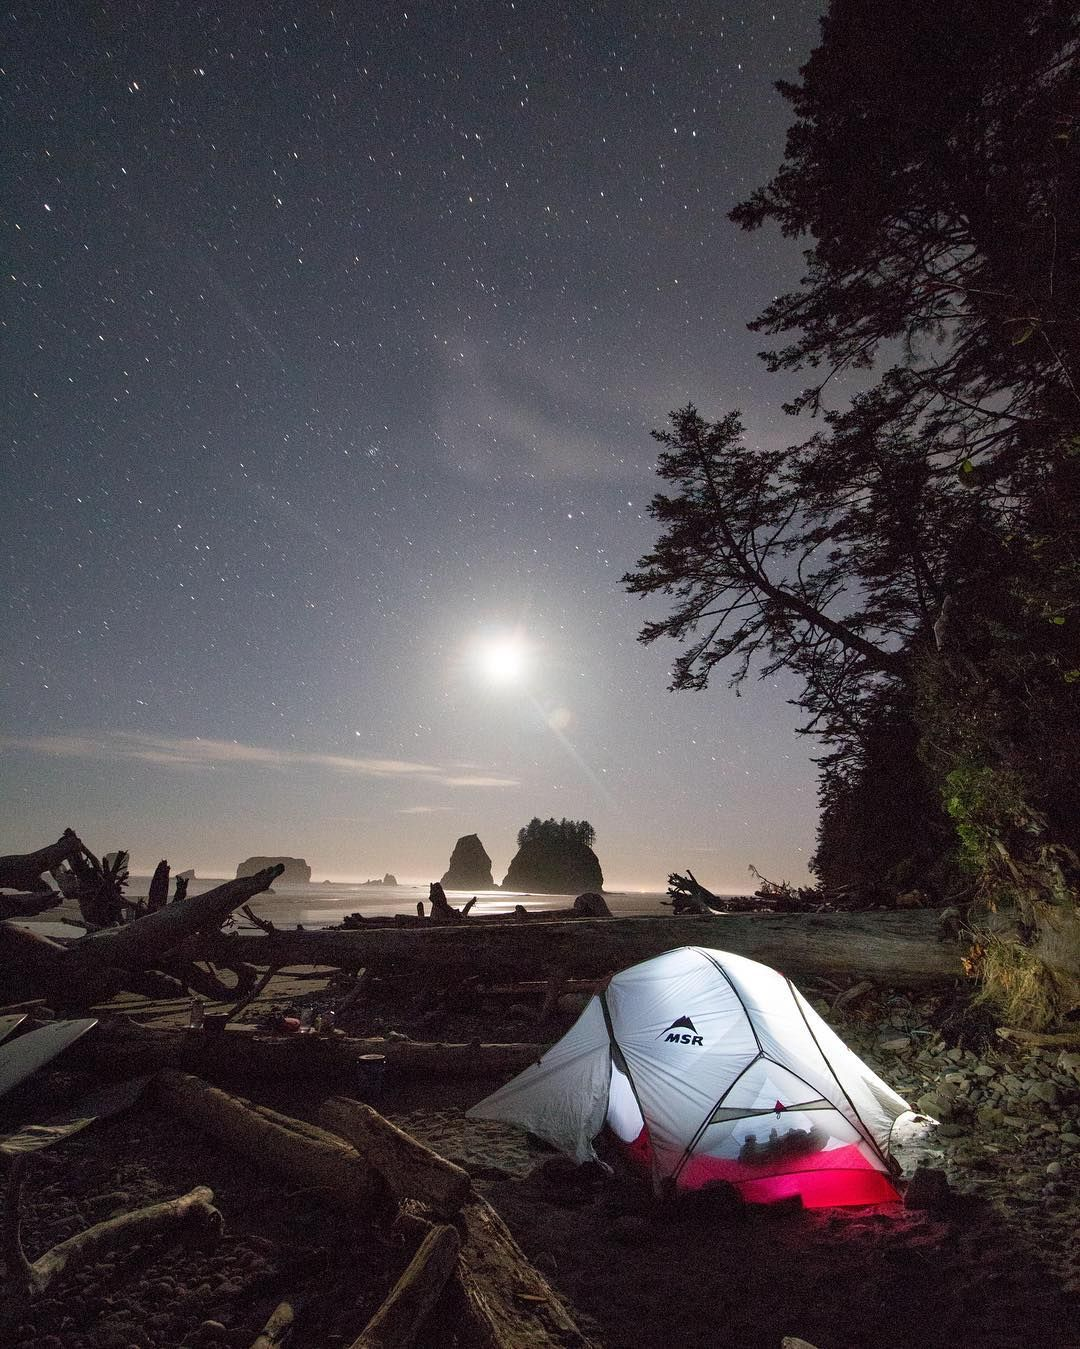 1000 Images About Ͼ� Camping Hiking On Pinterest: Pin By Sarah Blakeney Willis On Outdoor